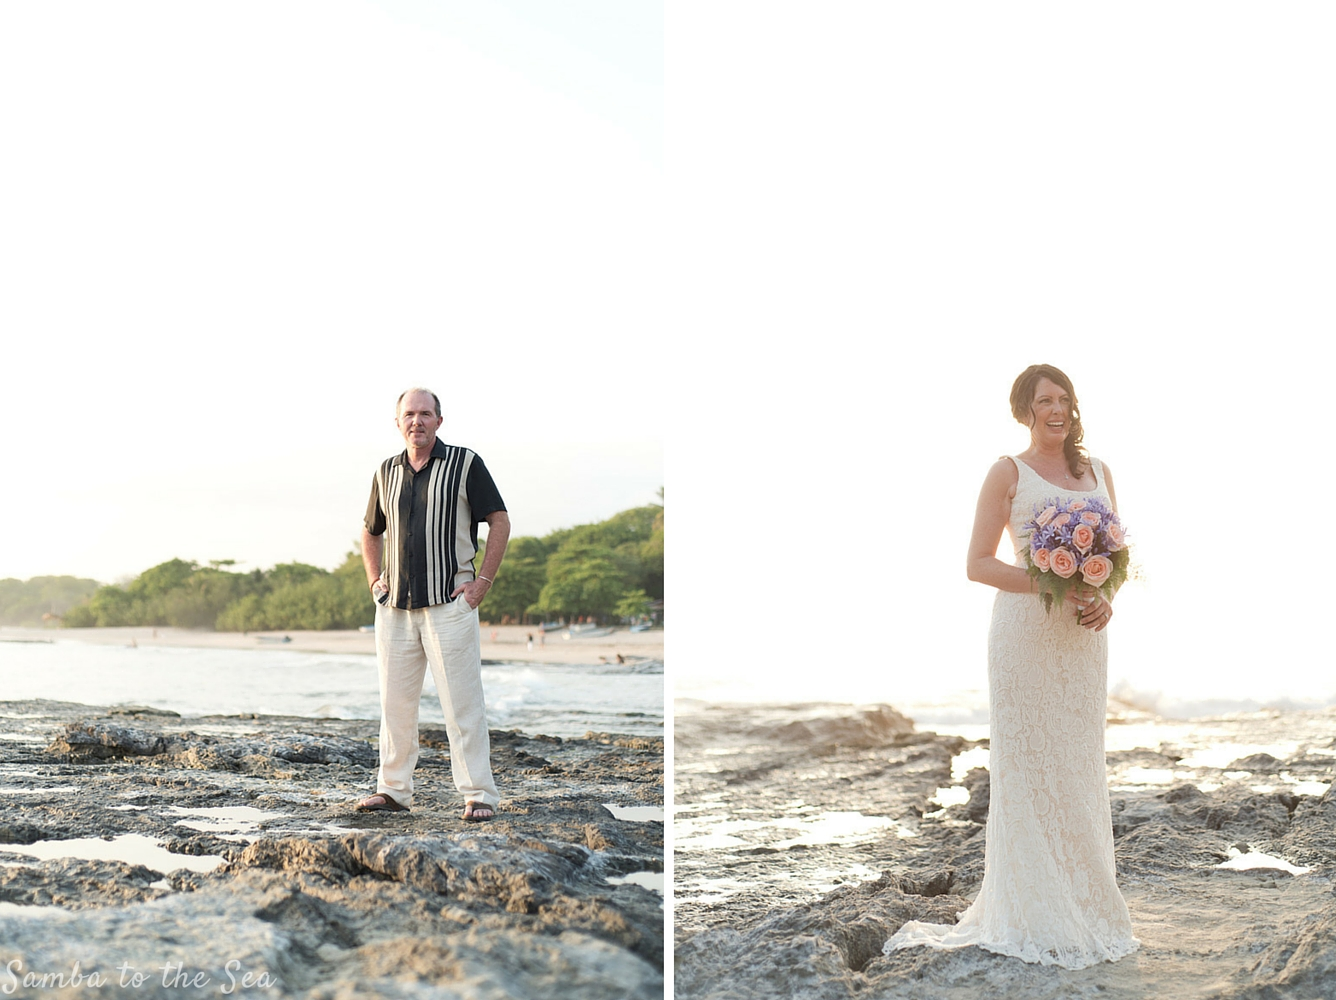 Bride and groom portraits on the beach in Playa Pelada in Nosara, Costa Rica. Photographed by Kristen M. Brown, Samba to the Sea Photography.